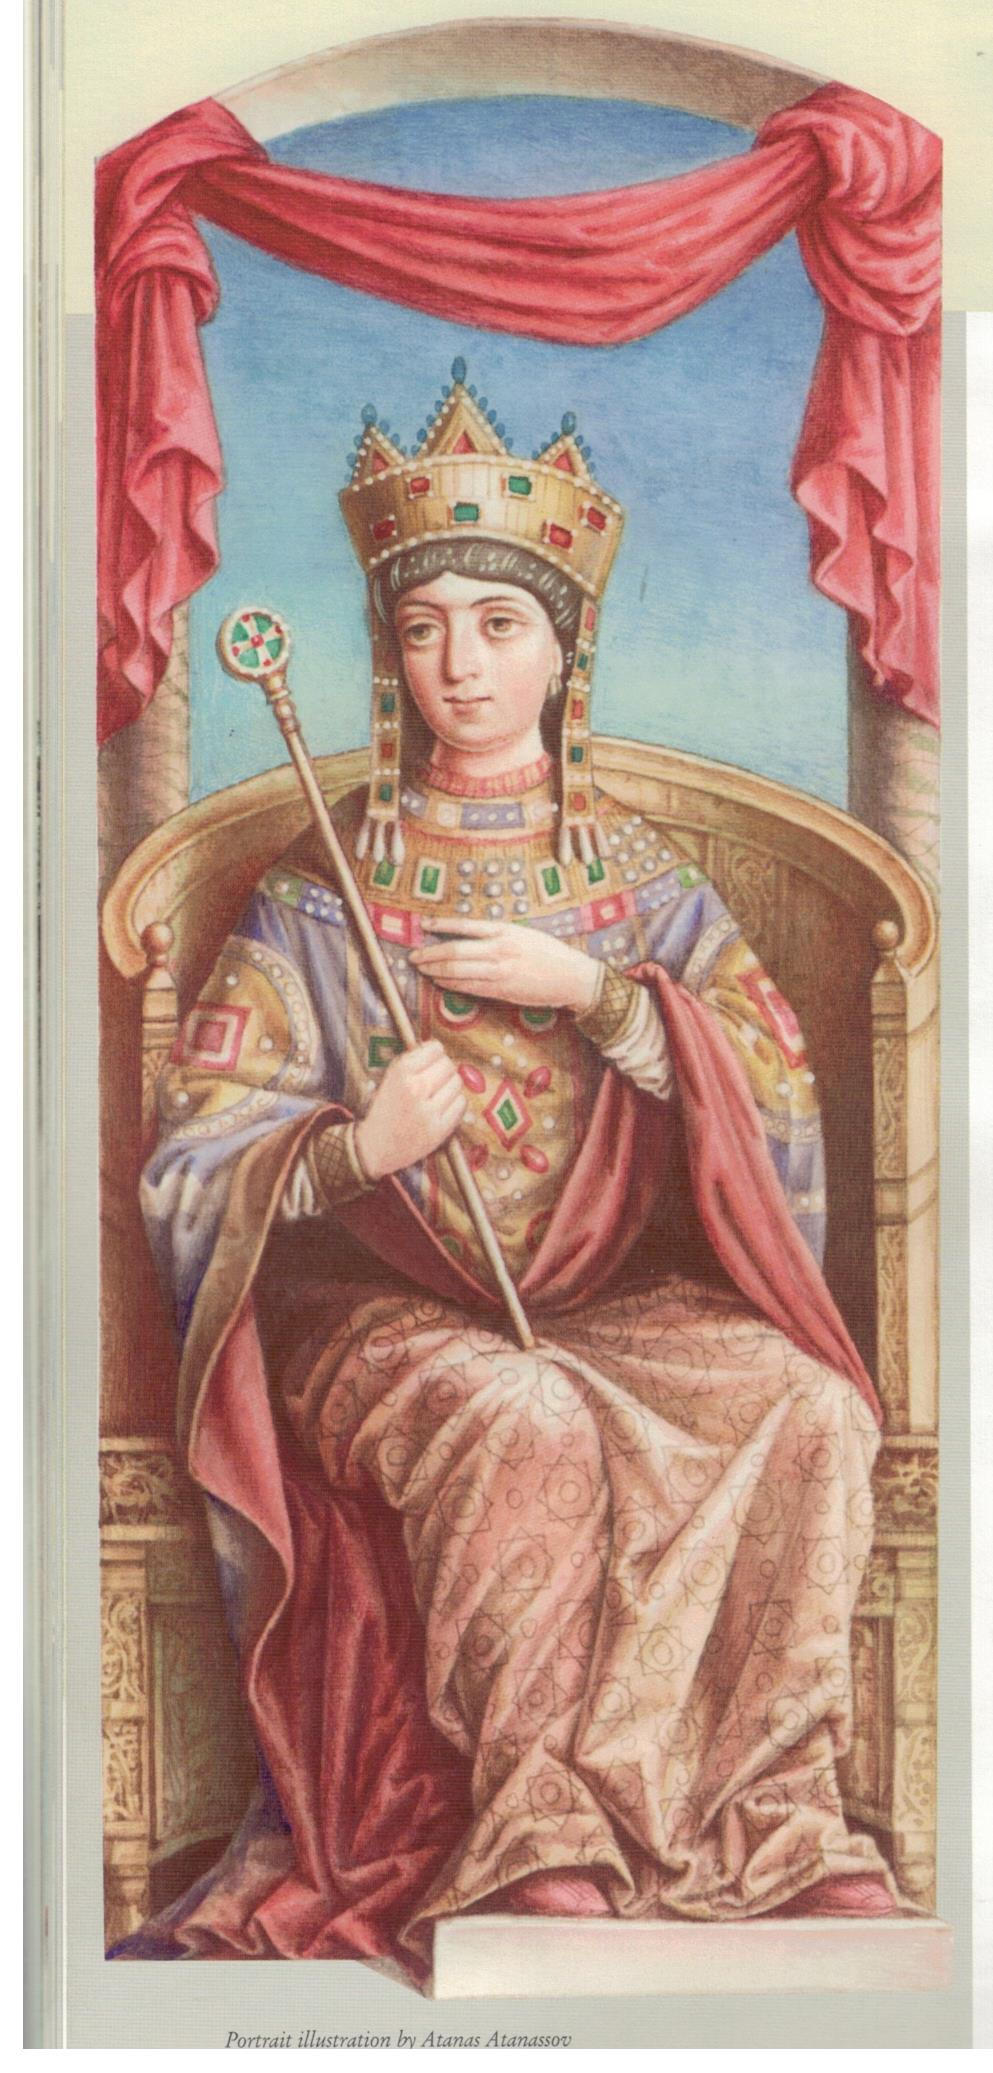 Zoe-from-Rulers-of-the-Byzantine-Empire-published-by-KIBEA